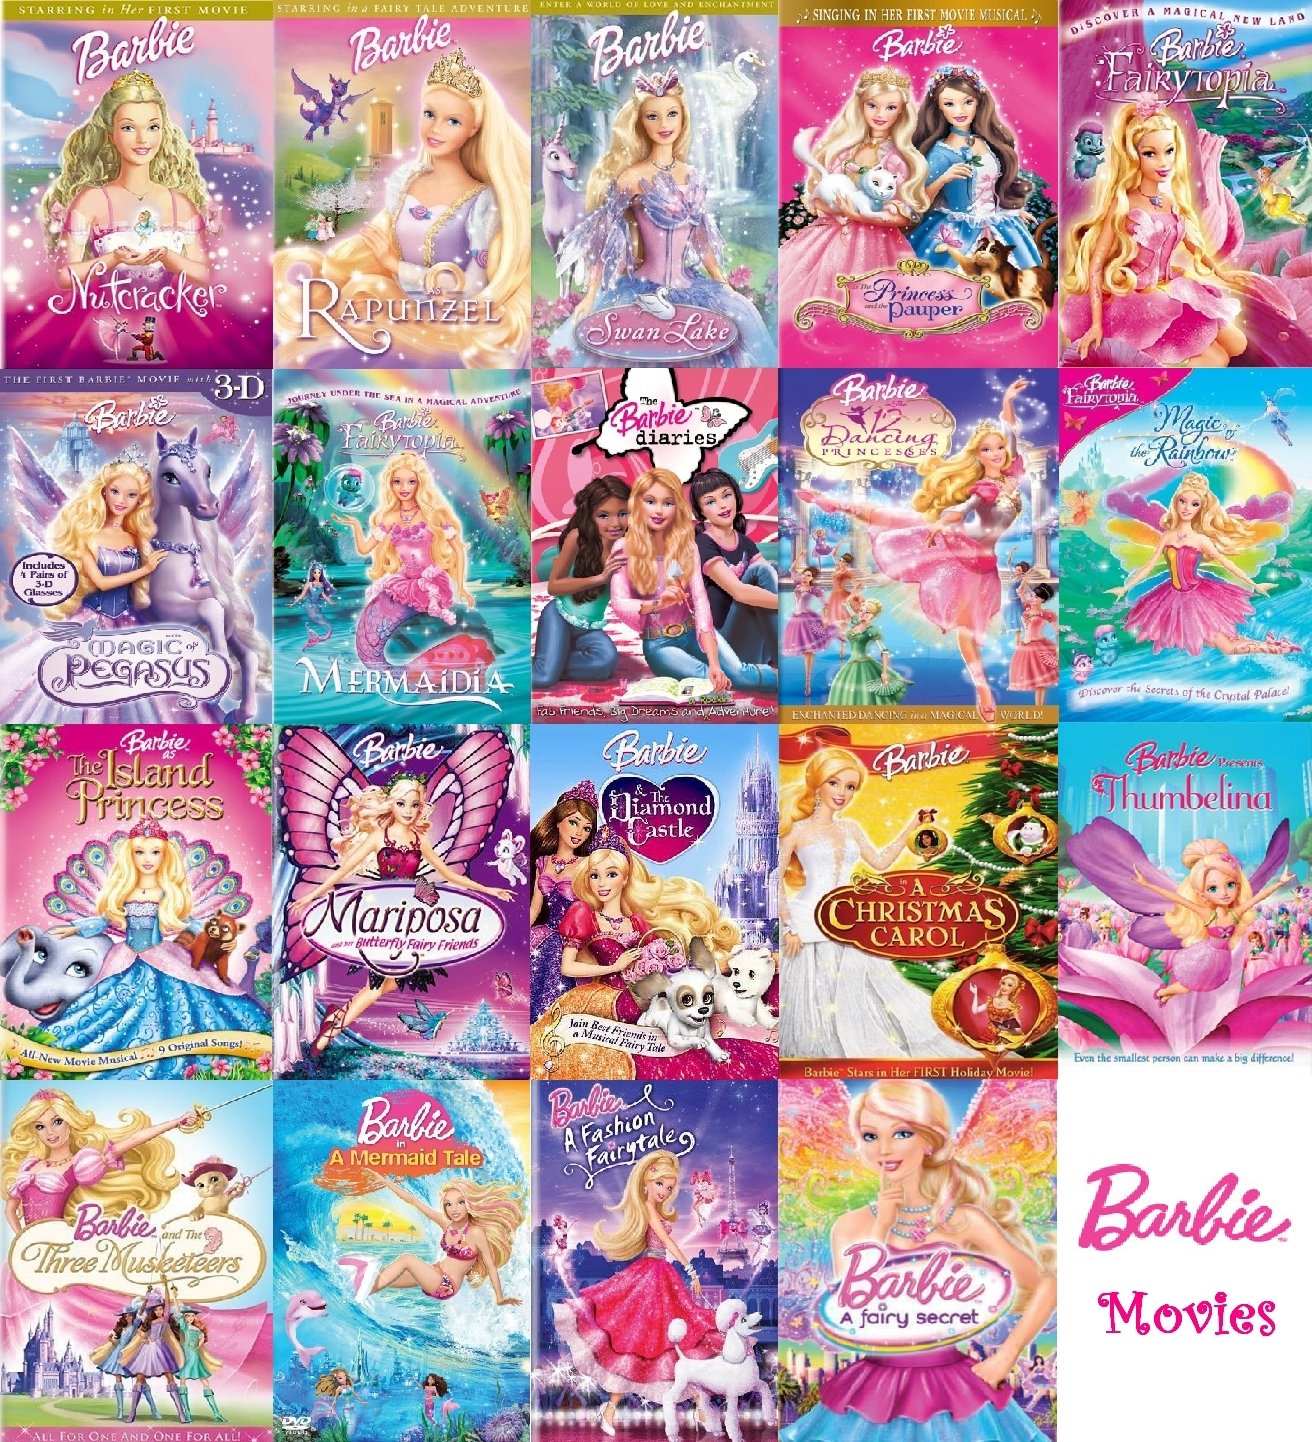 barbie movies images barbie movies collection (complete) hd